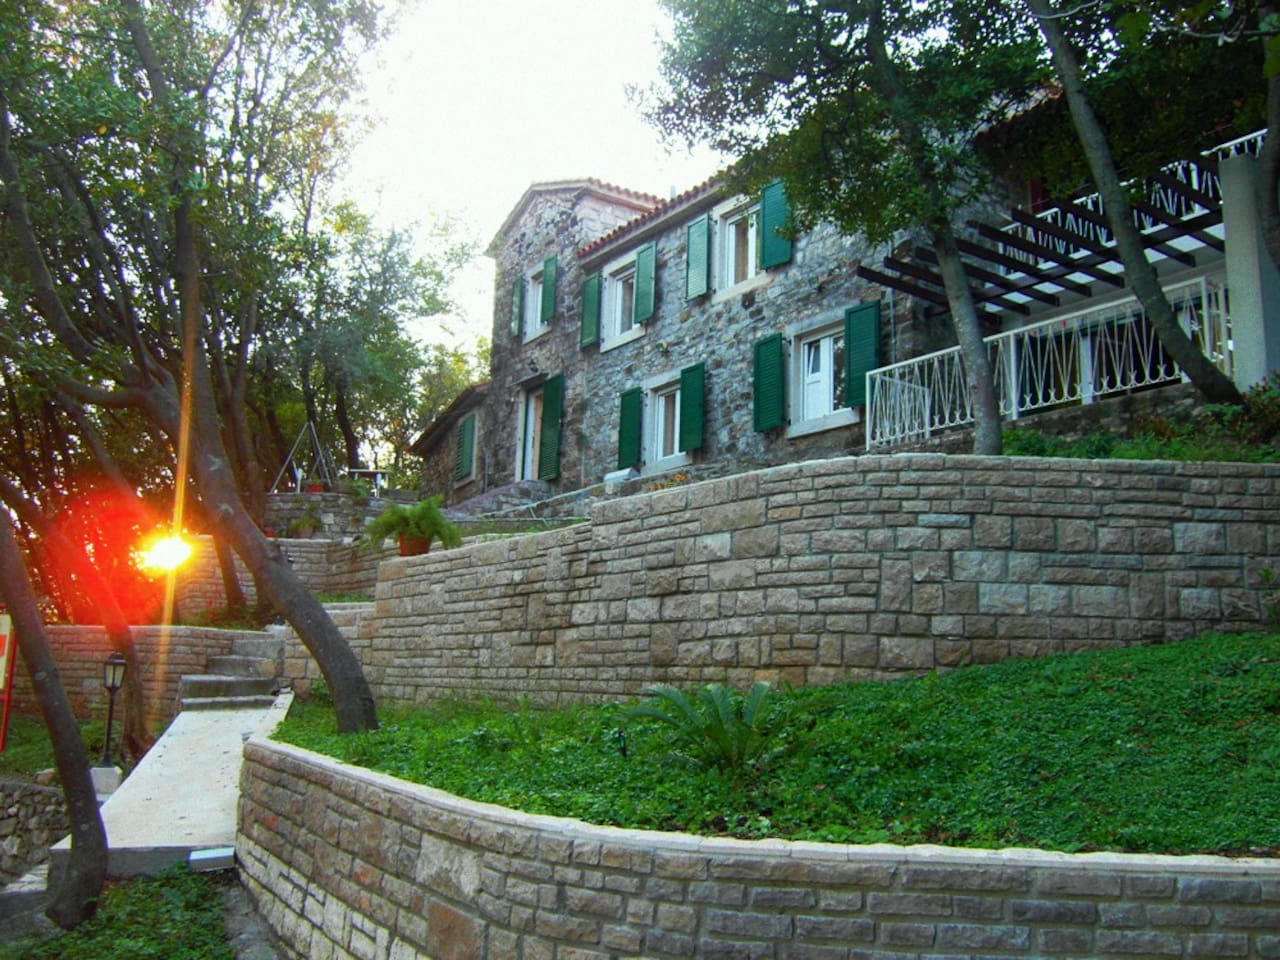 Old Stone House From 19th Century - dusk view.